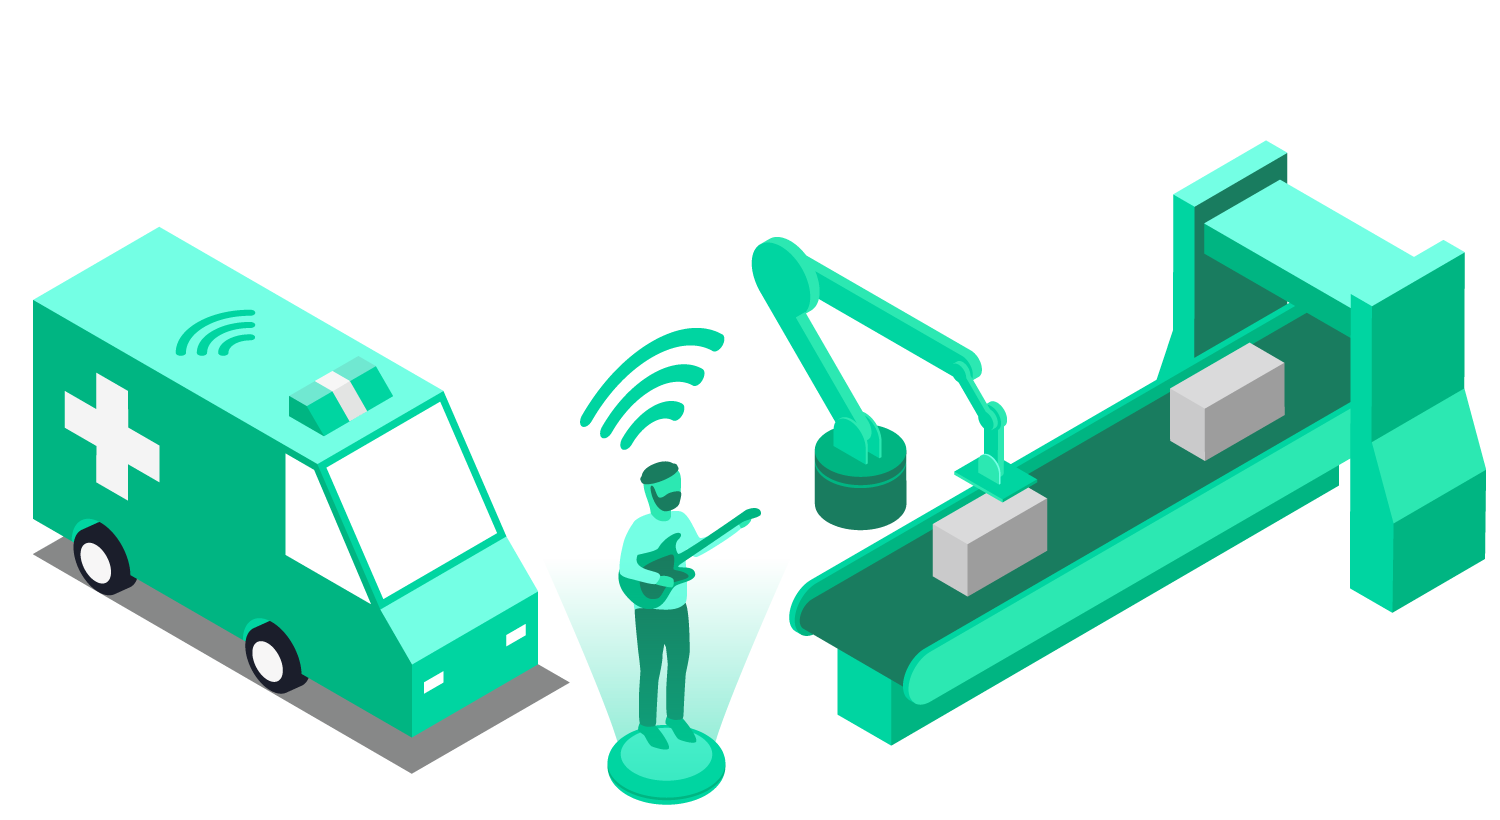 5G connectivity applications: ambulances, AR, robots in manufacturing